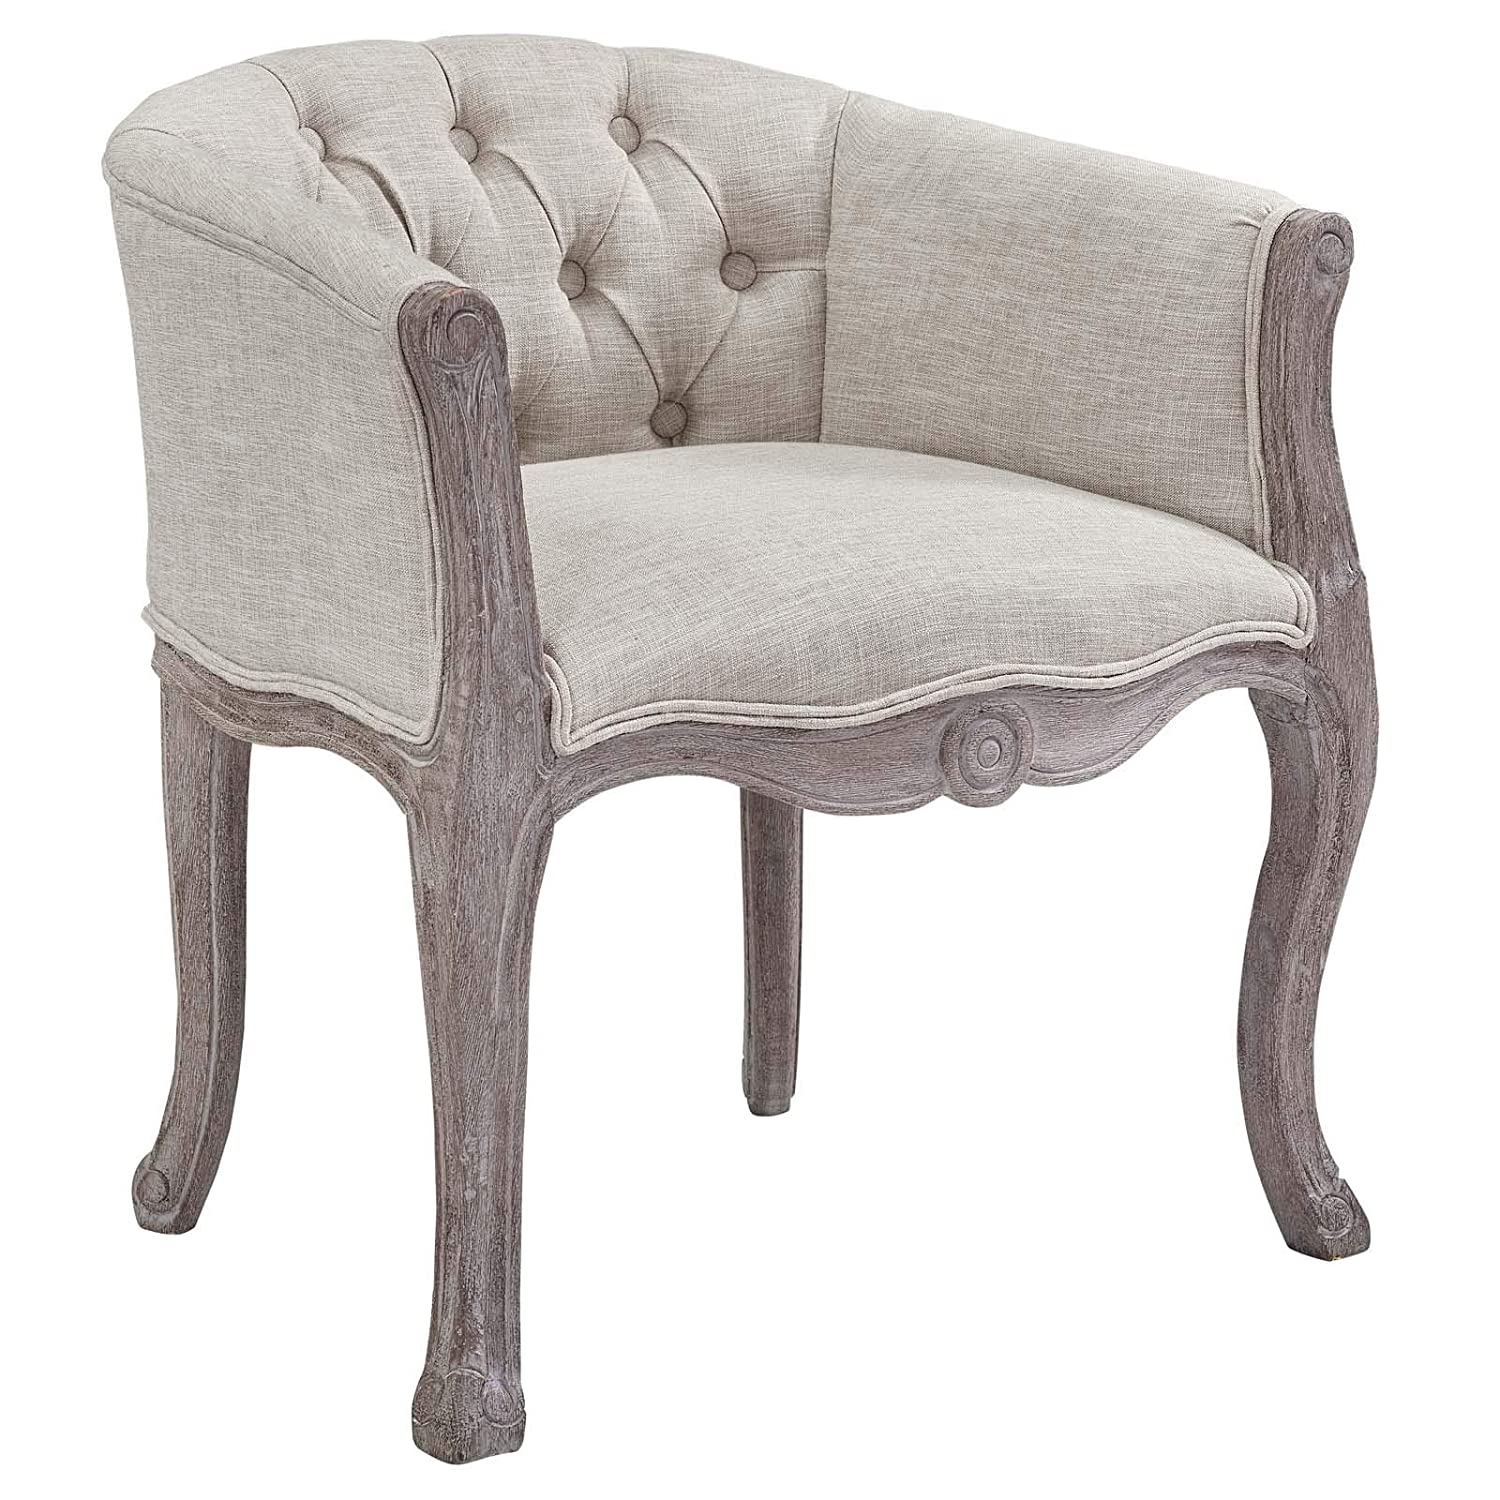 Modway Crown French Vintage Barrel Back Tufted Upholstered Fabric Four Kitchen and Dining Room Arm Chairs in Beige – Fully Assembled